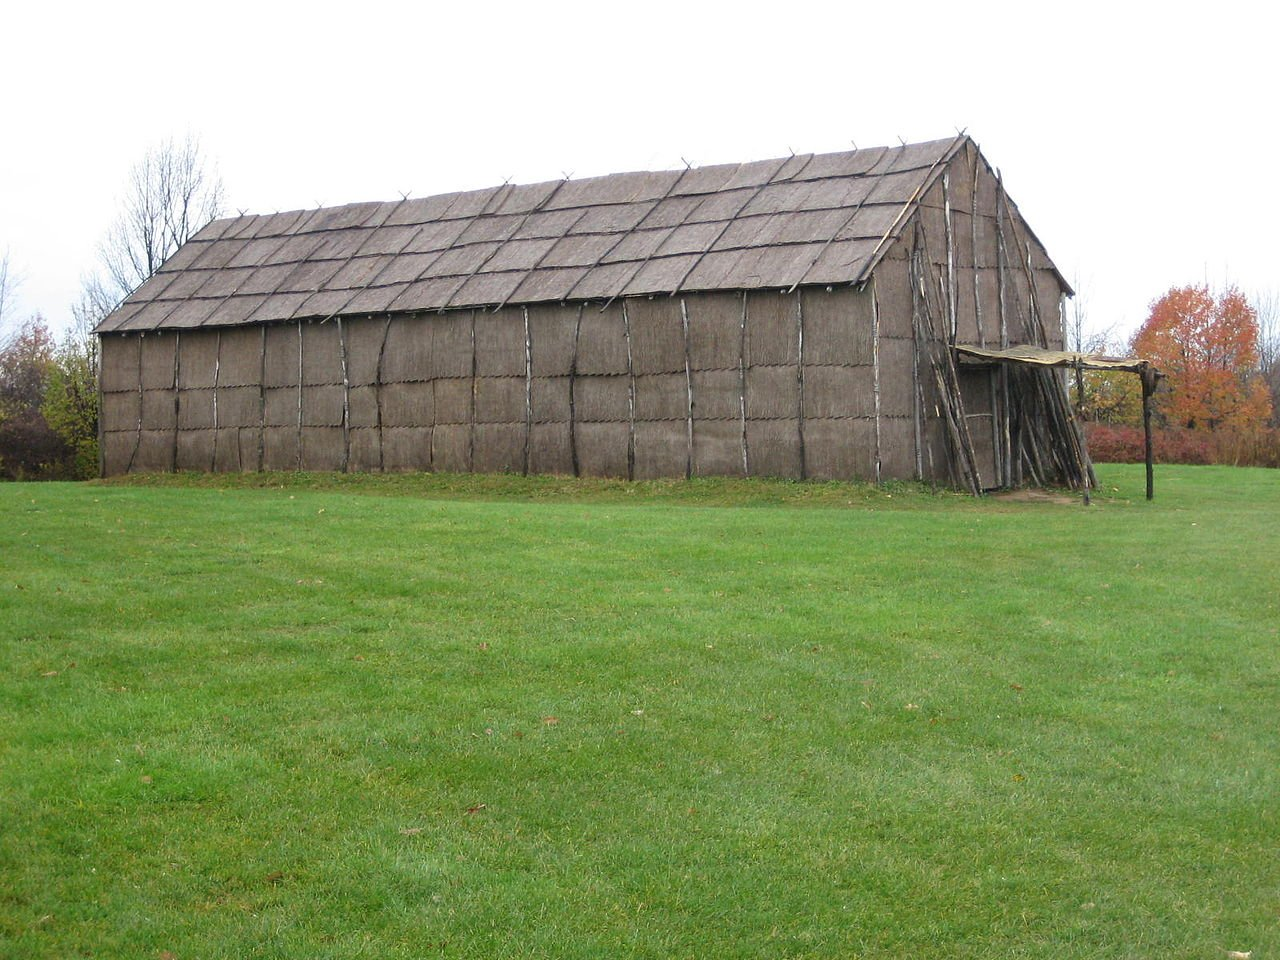 Ganondagan State Historic Site was once the location of the largest Seneca village of the 17th century. This reconstructed longhouse gives visitors an idea of what longhouses used to look like.